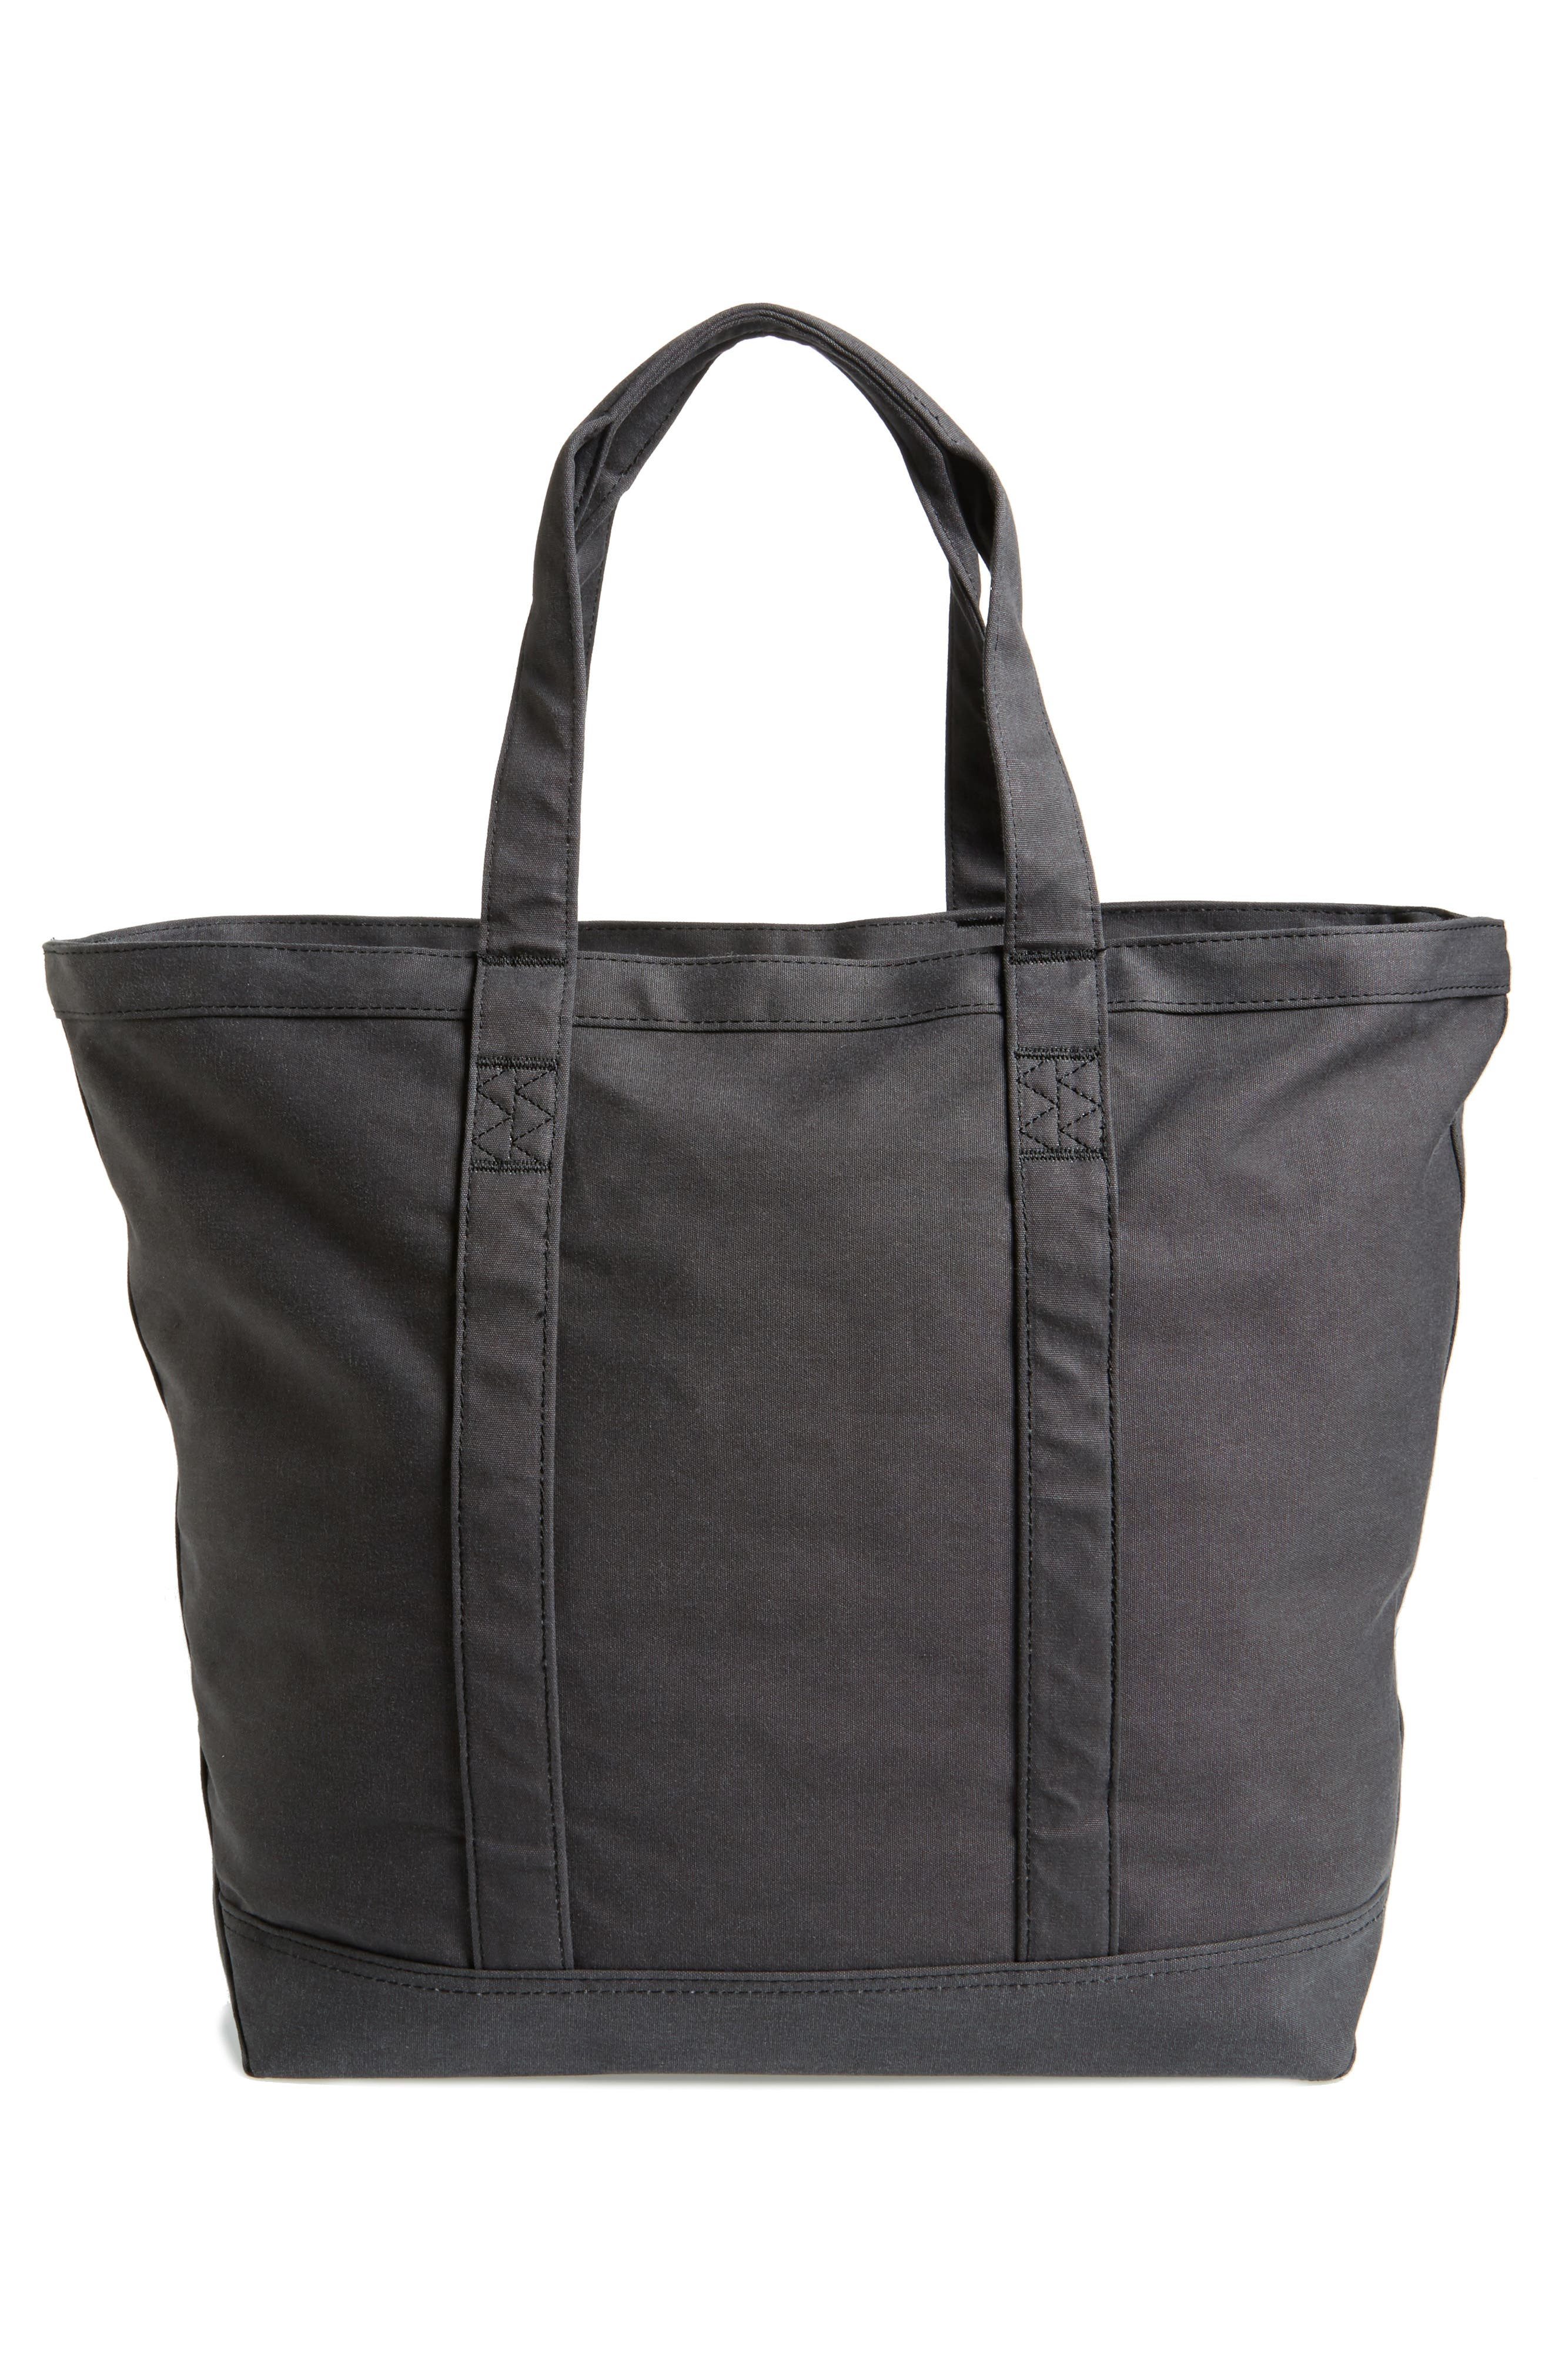 Bamfield Tote Bag,                             Alternate thumbnail 2, color,                             Black